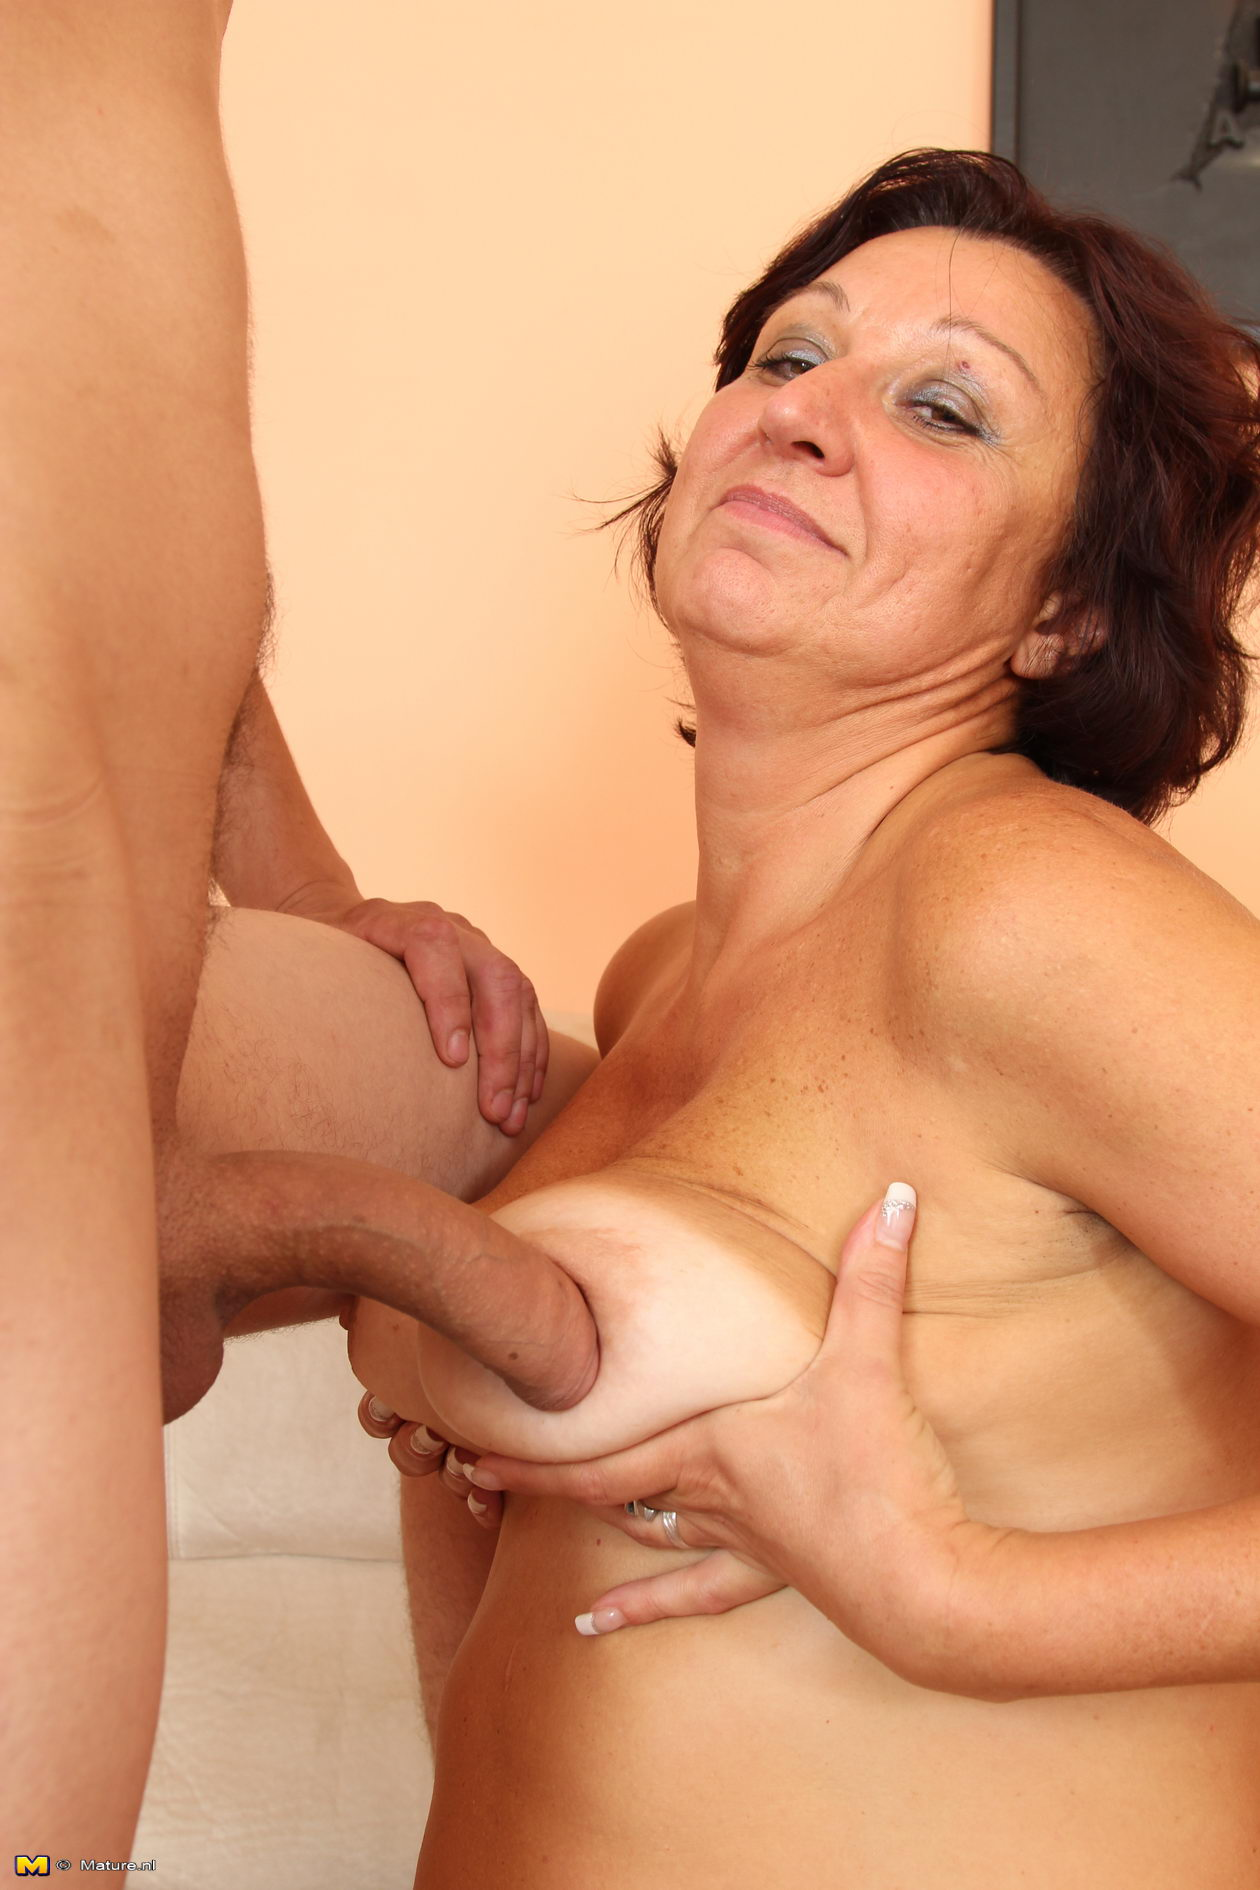 mature slut fucking and sucking a toy boy